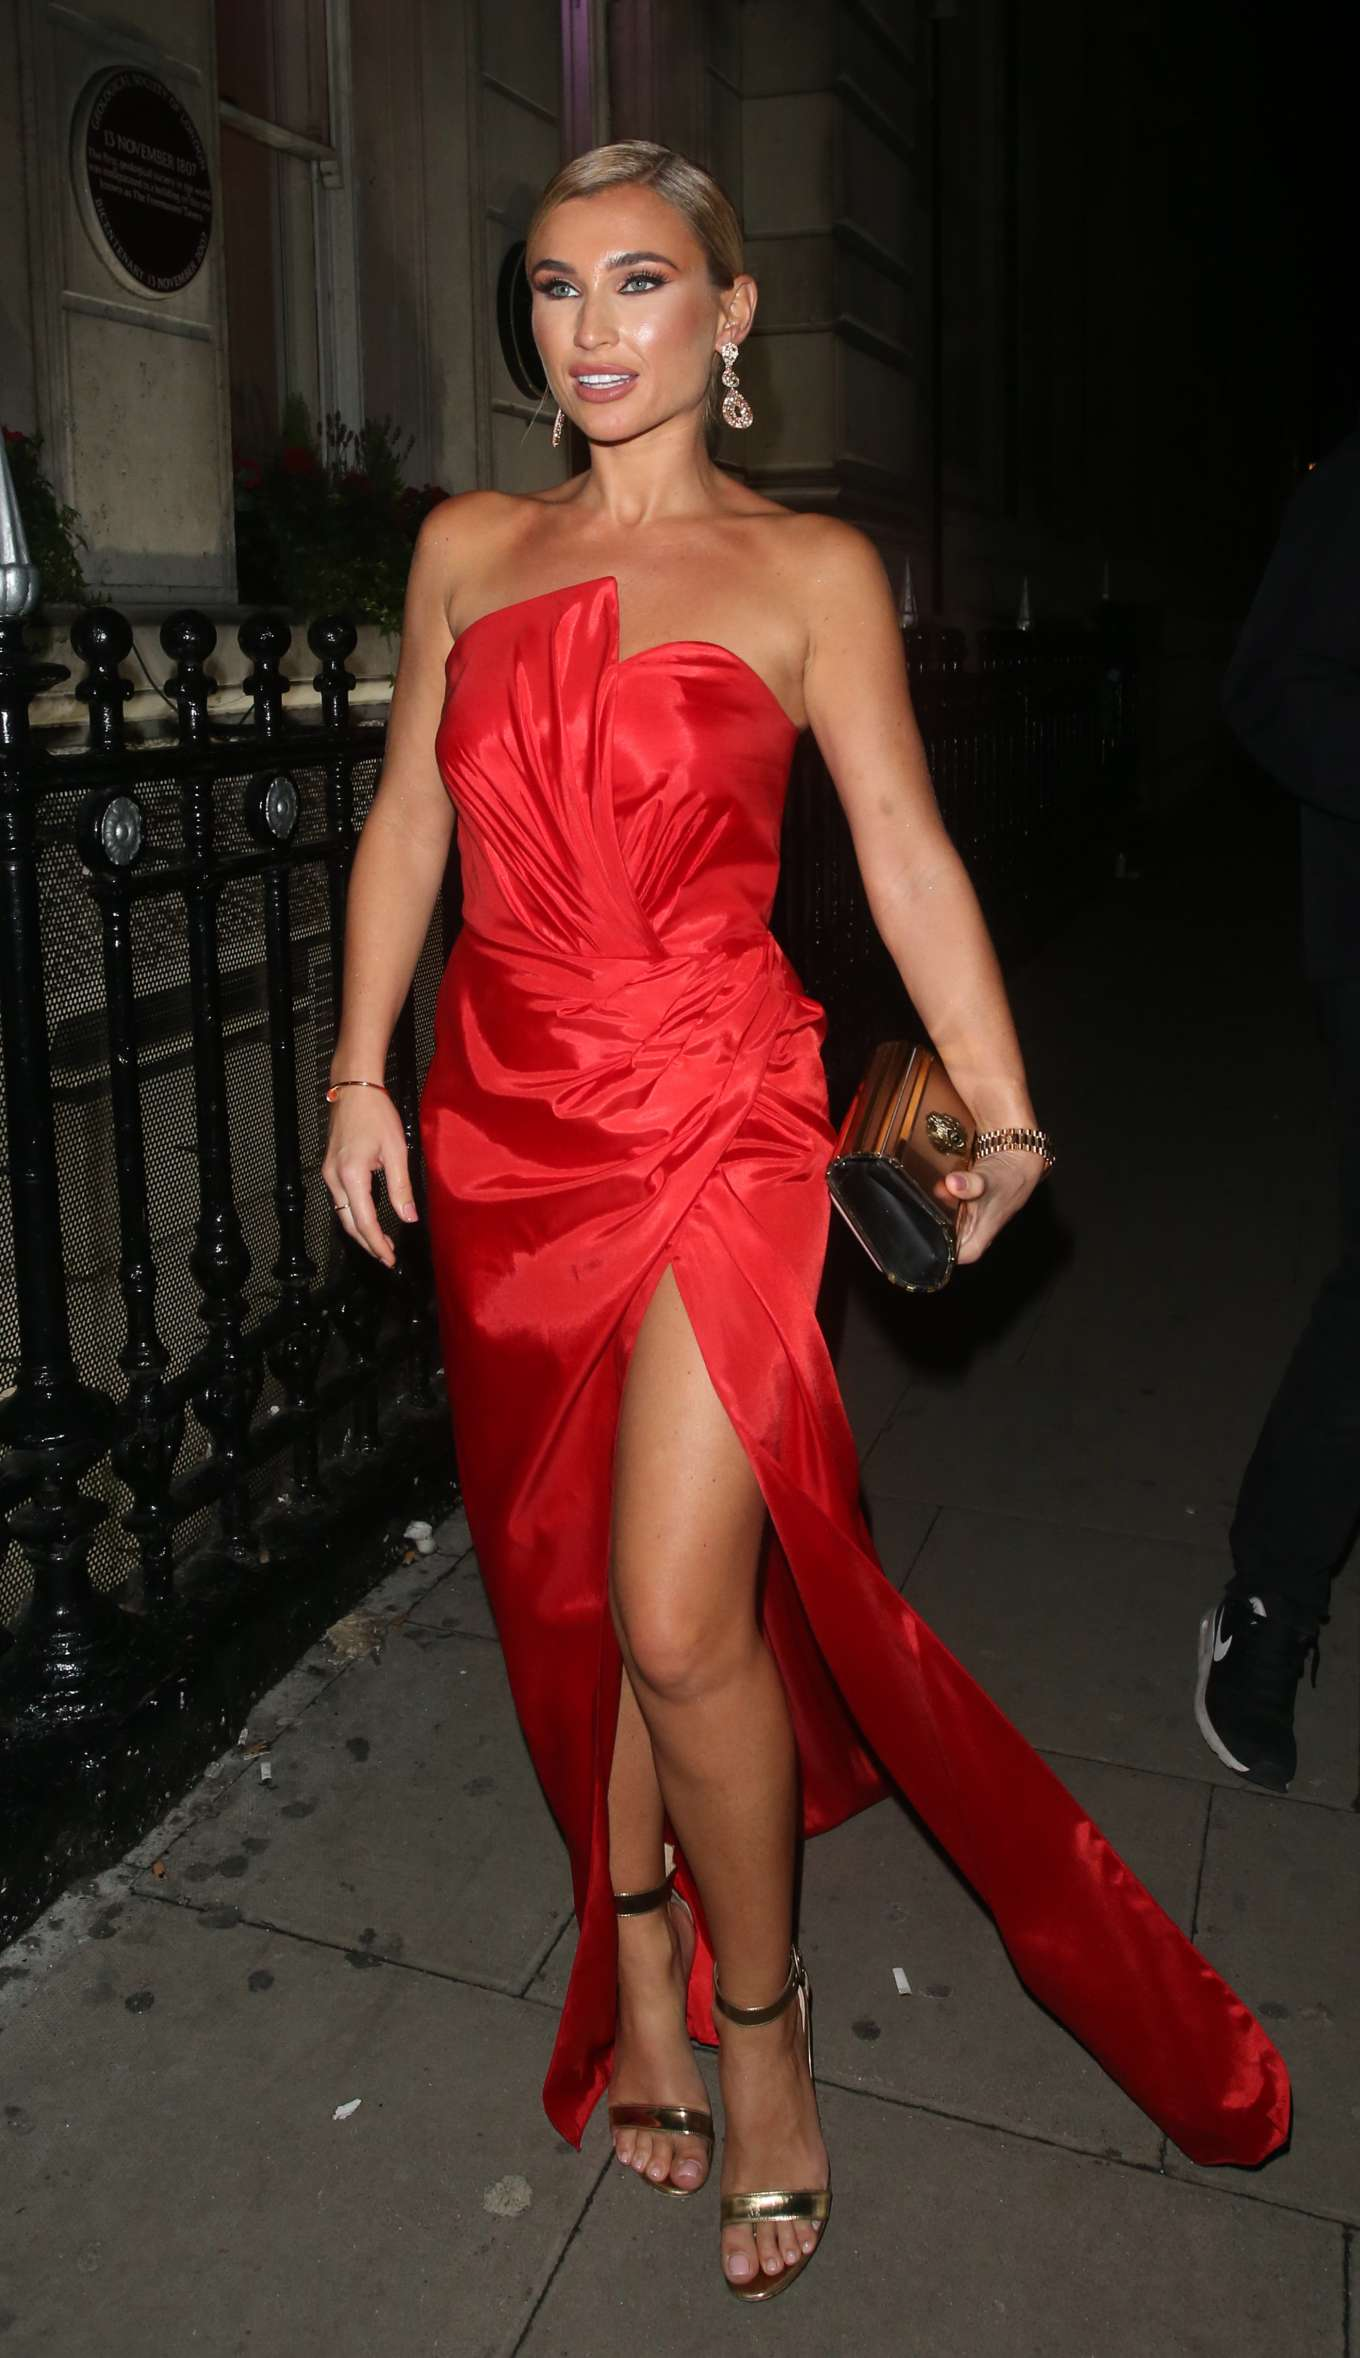 Billie Faiers in Red Dress - Arrives at The Haven House Ball in London